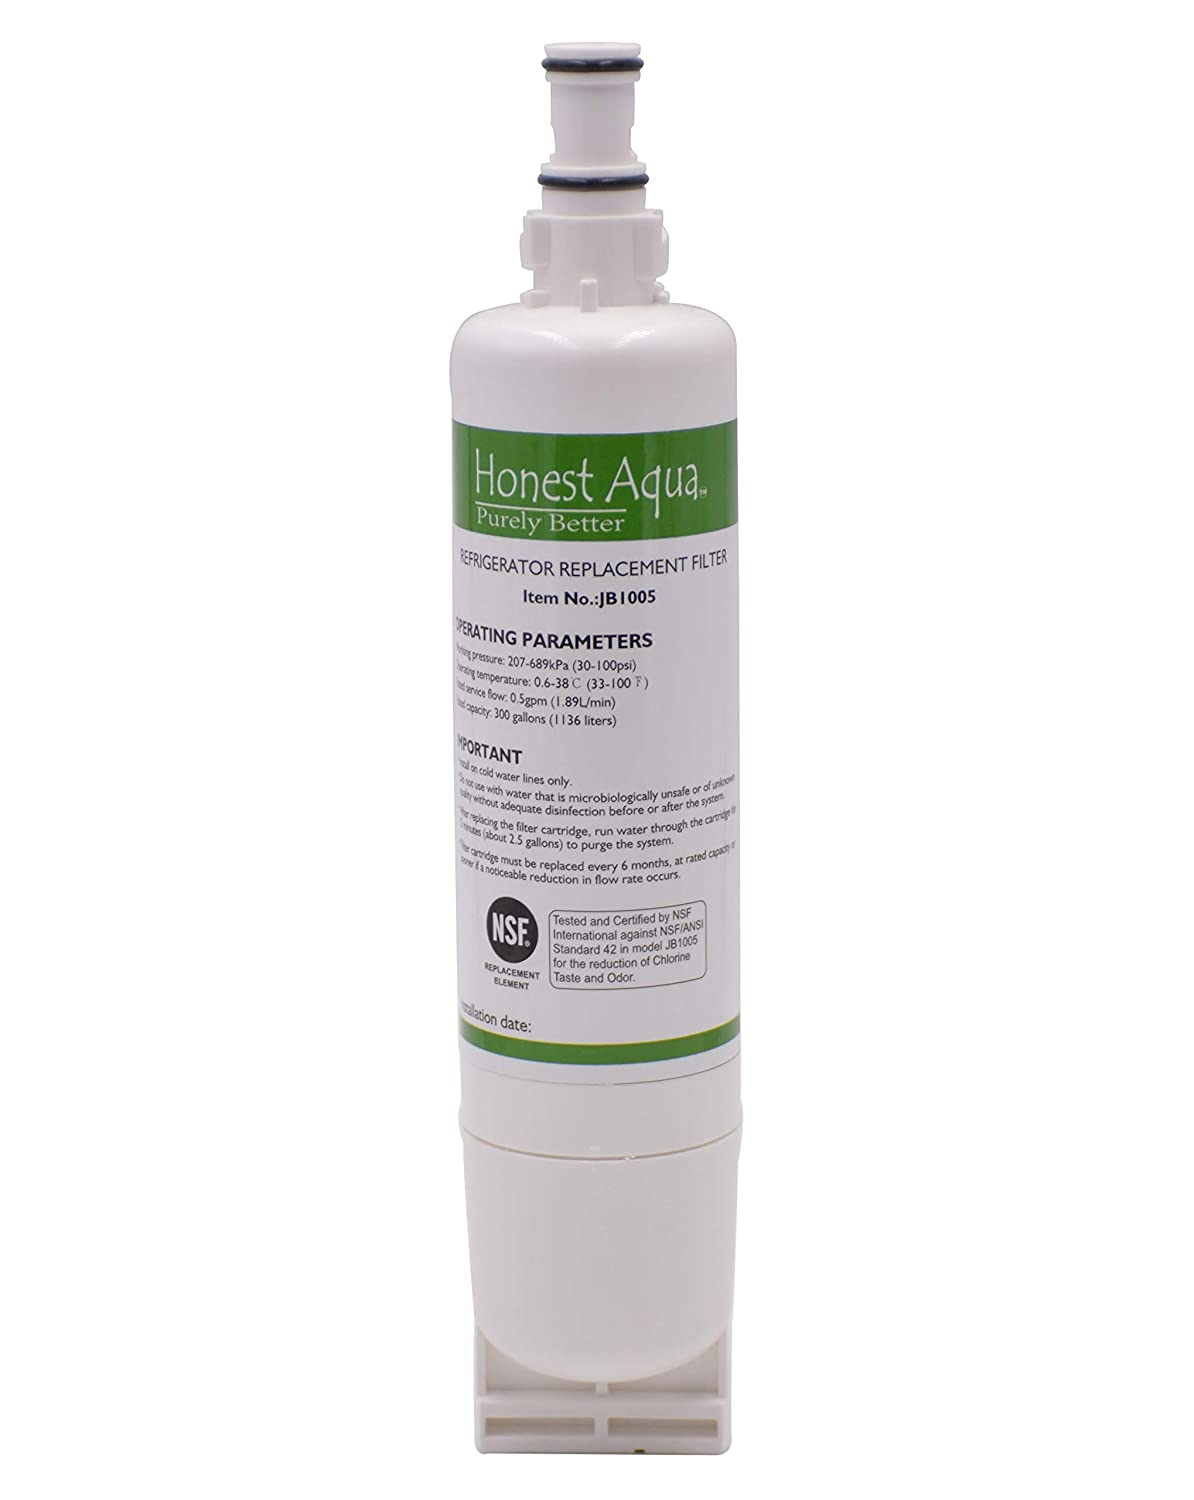 Whirlpool 4396508 Compatible Refrigerator Water Filter, replacement for 4396510, 4396508, Filter 5